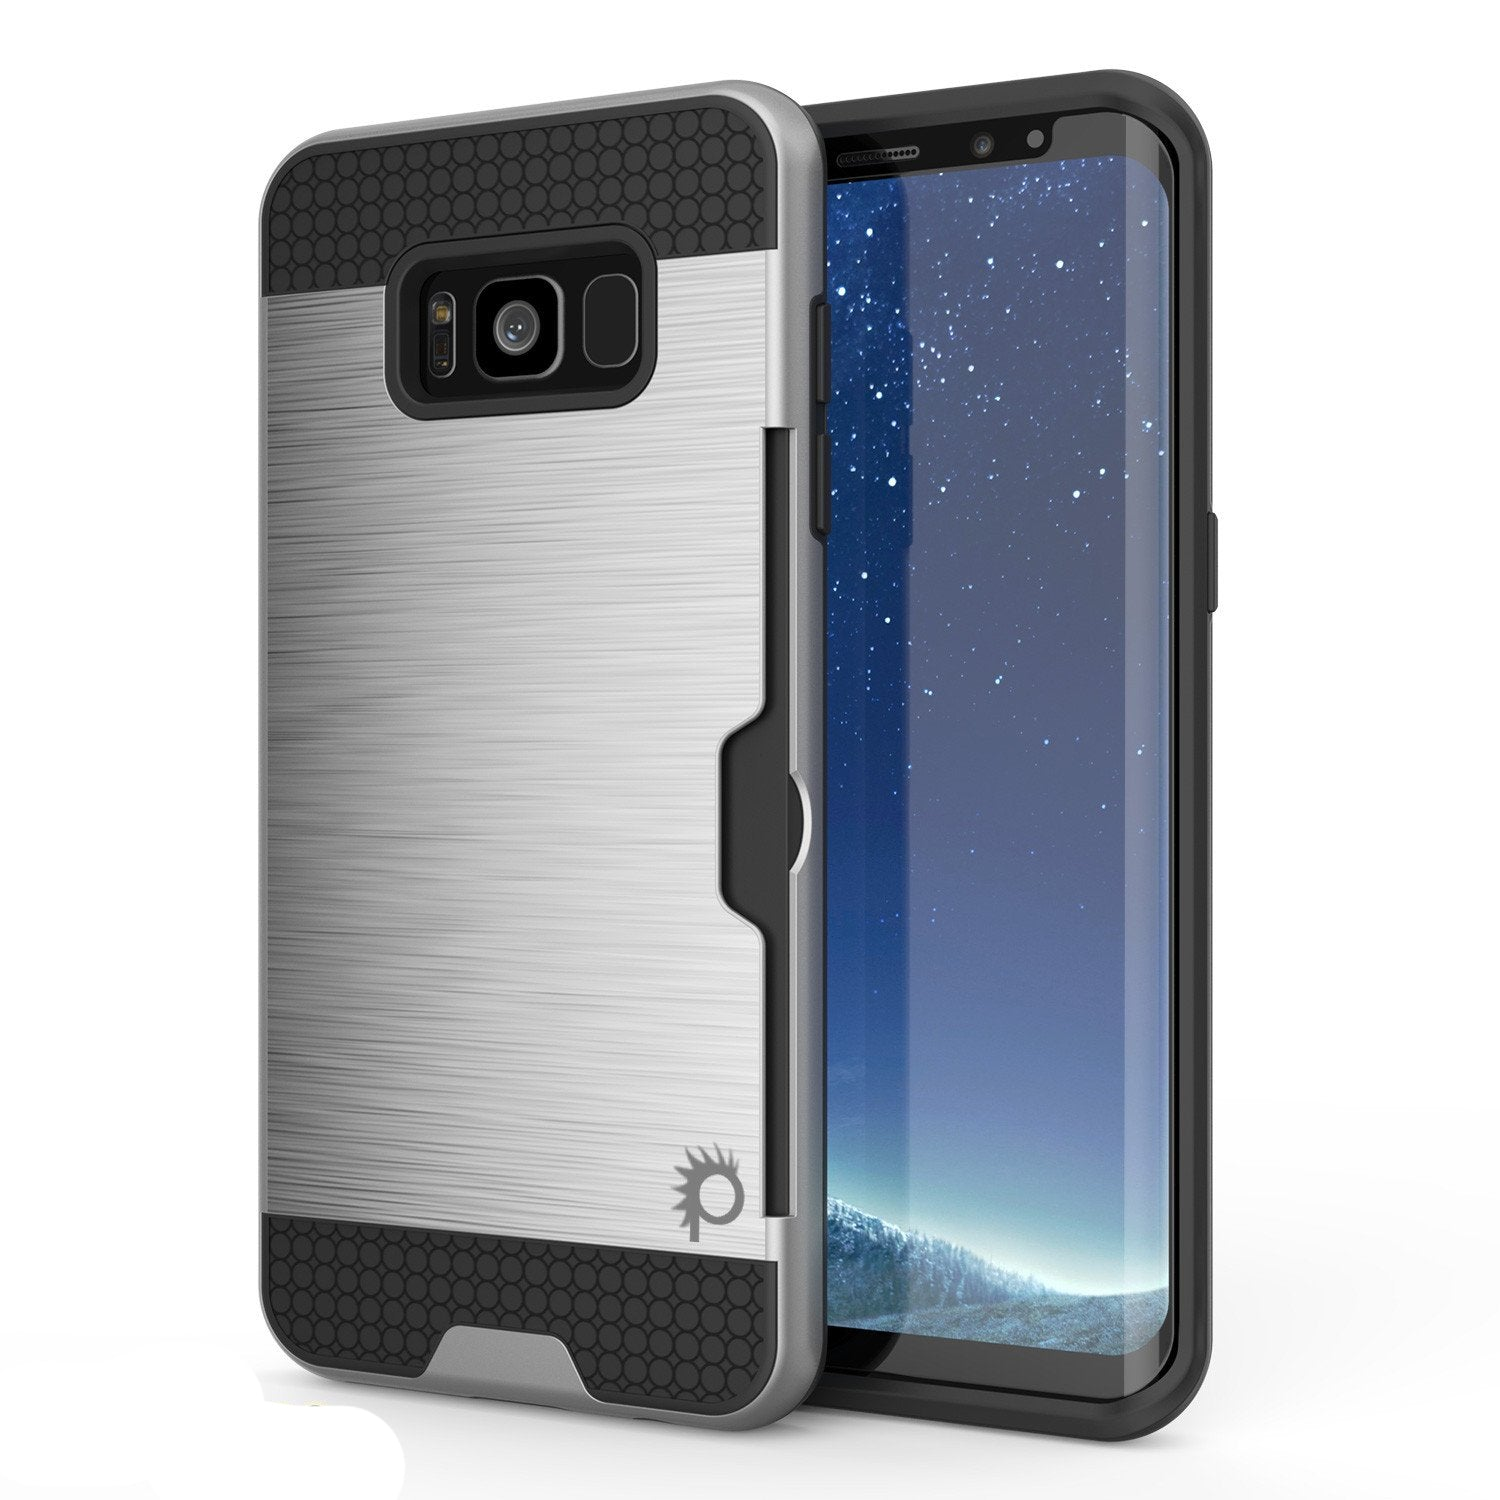 Galaxy S8 Case, PUNKcase [SLOT Series] [Slim Fit] [Silver]